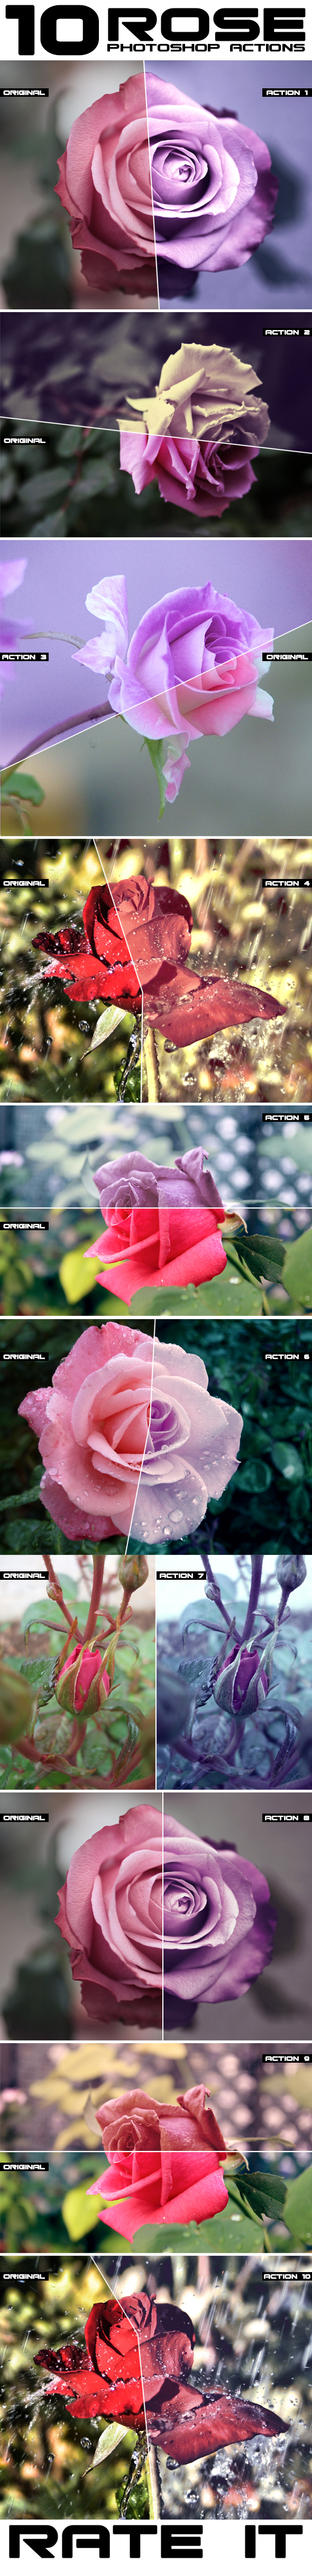 Rose Flower Photoshop Actions by Grugle